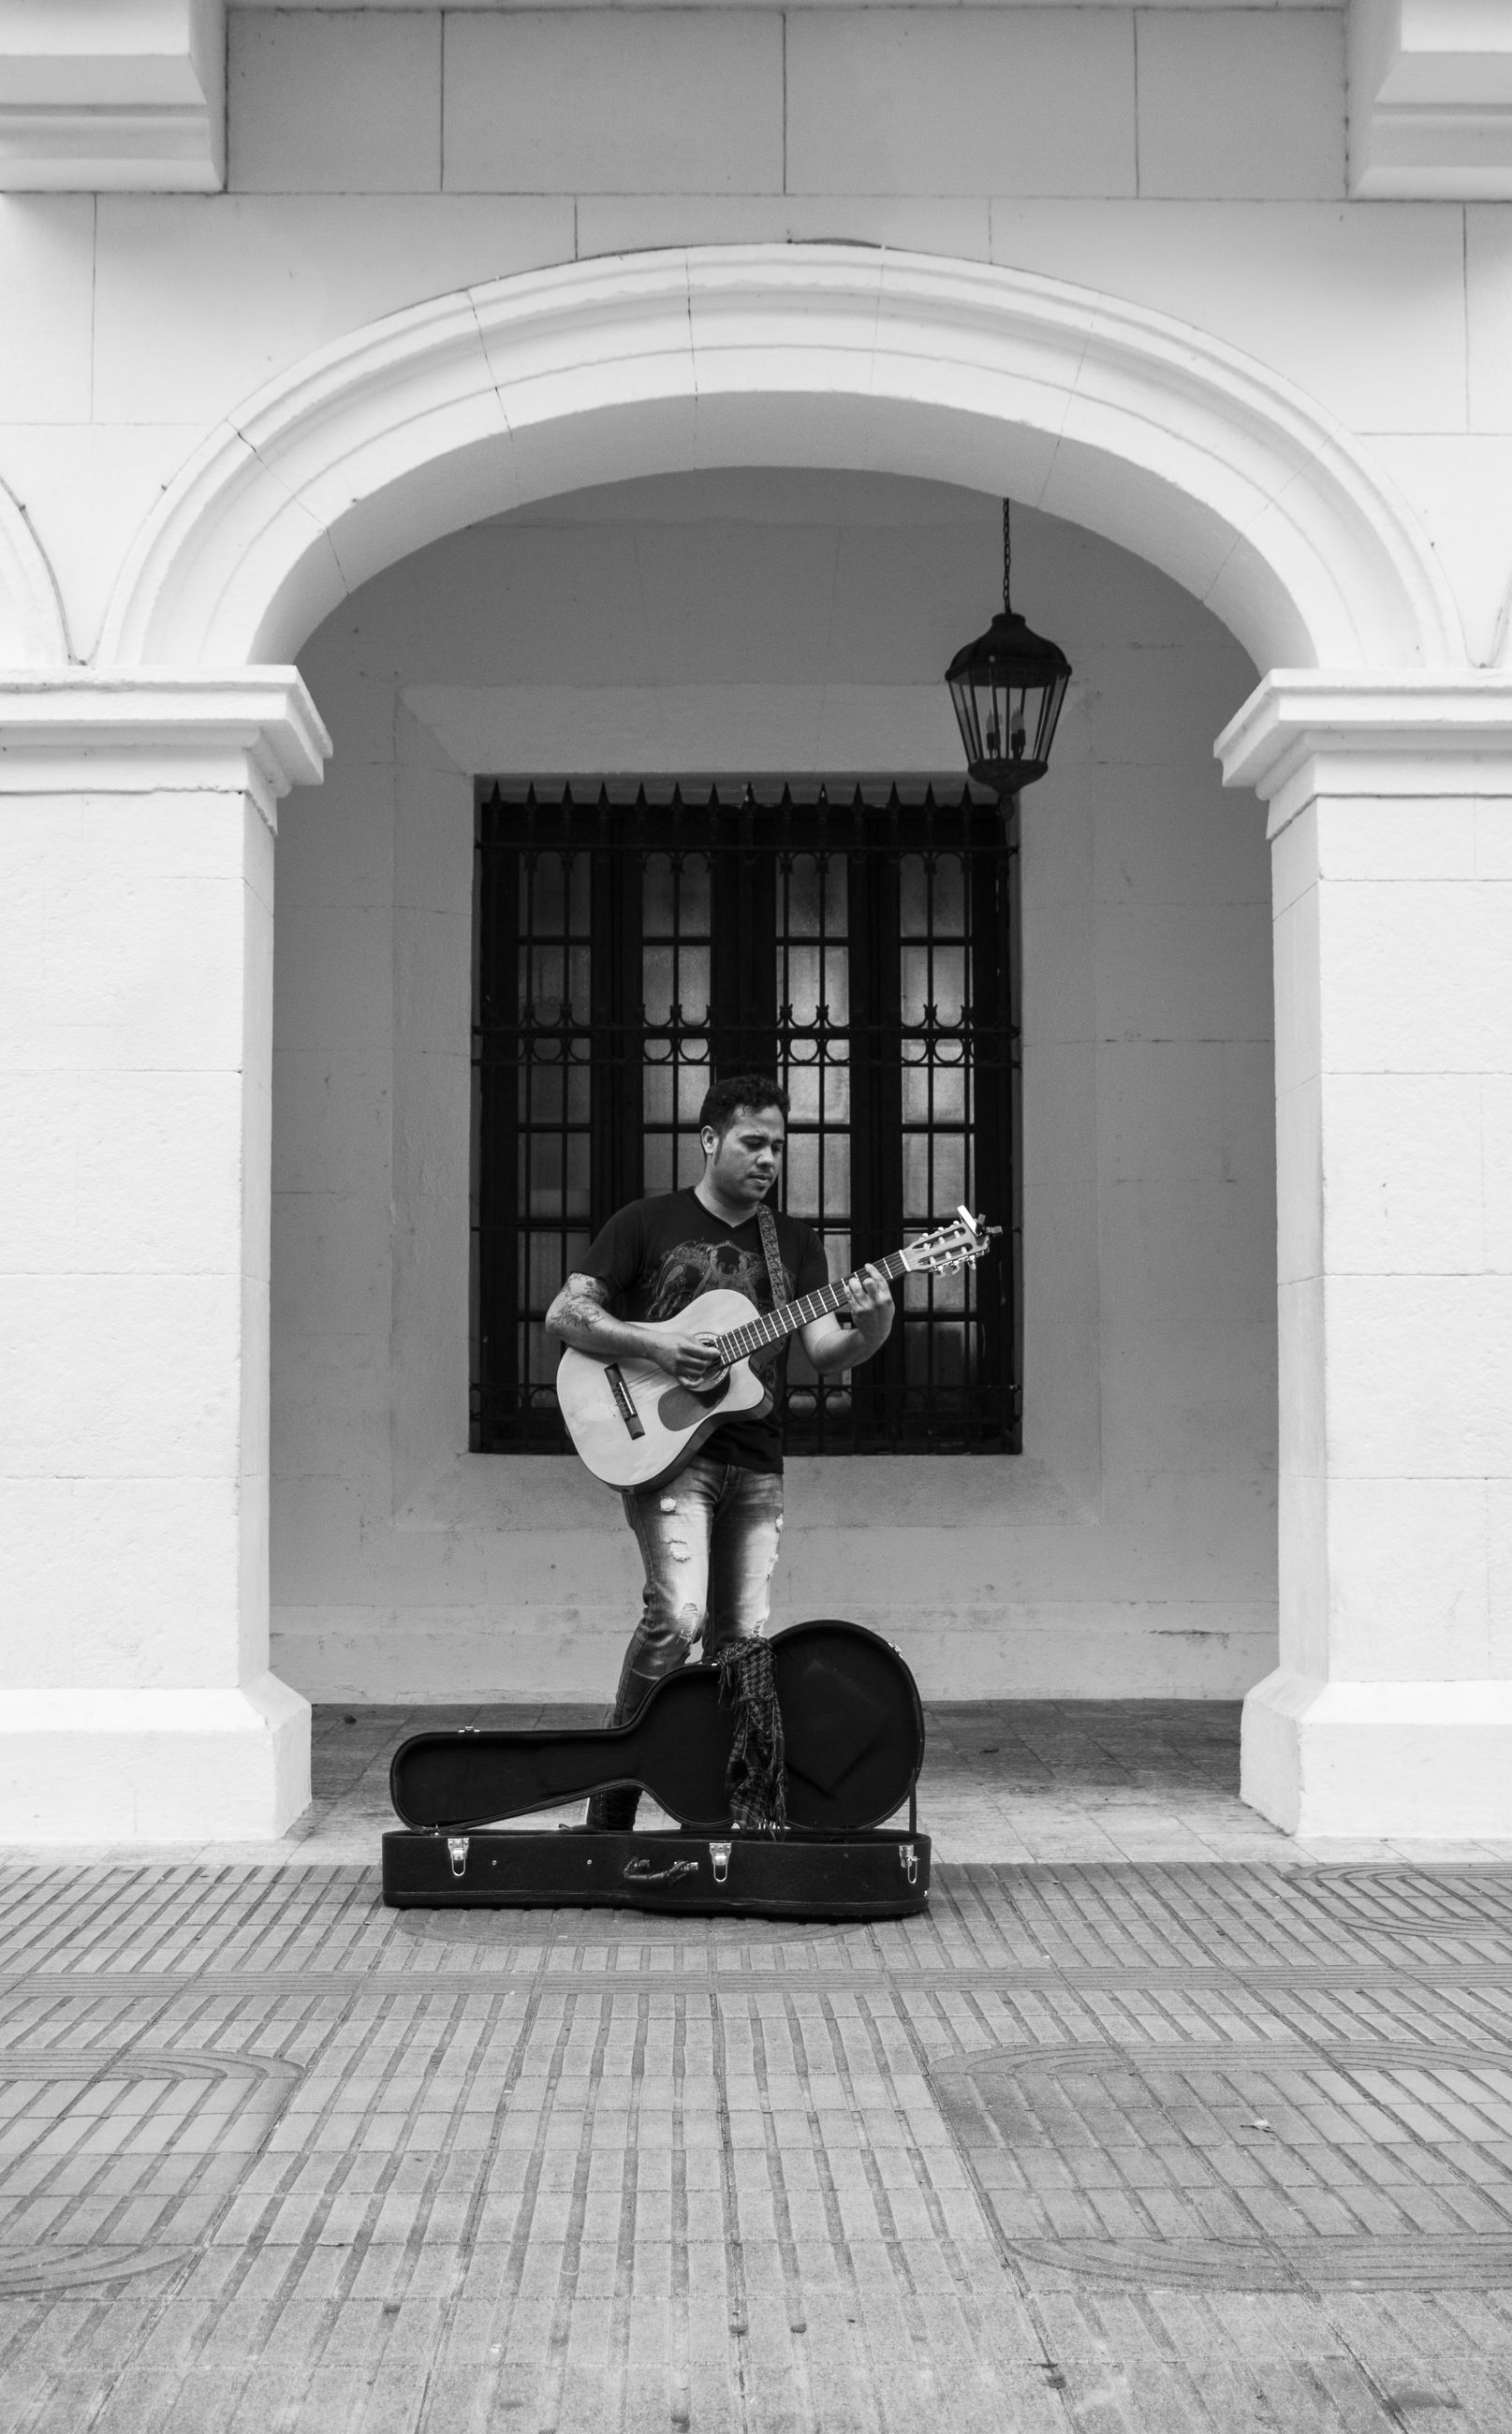 real people, full length, architecture, one person, building exterior, built structure, musical instrument, musician, lifestyles, playing, leisure activity, music, day, arch, performance, outdoors, arts culture and entertainment, guitar, skill, architectural column, men, young adult